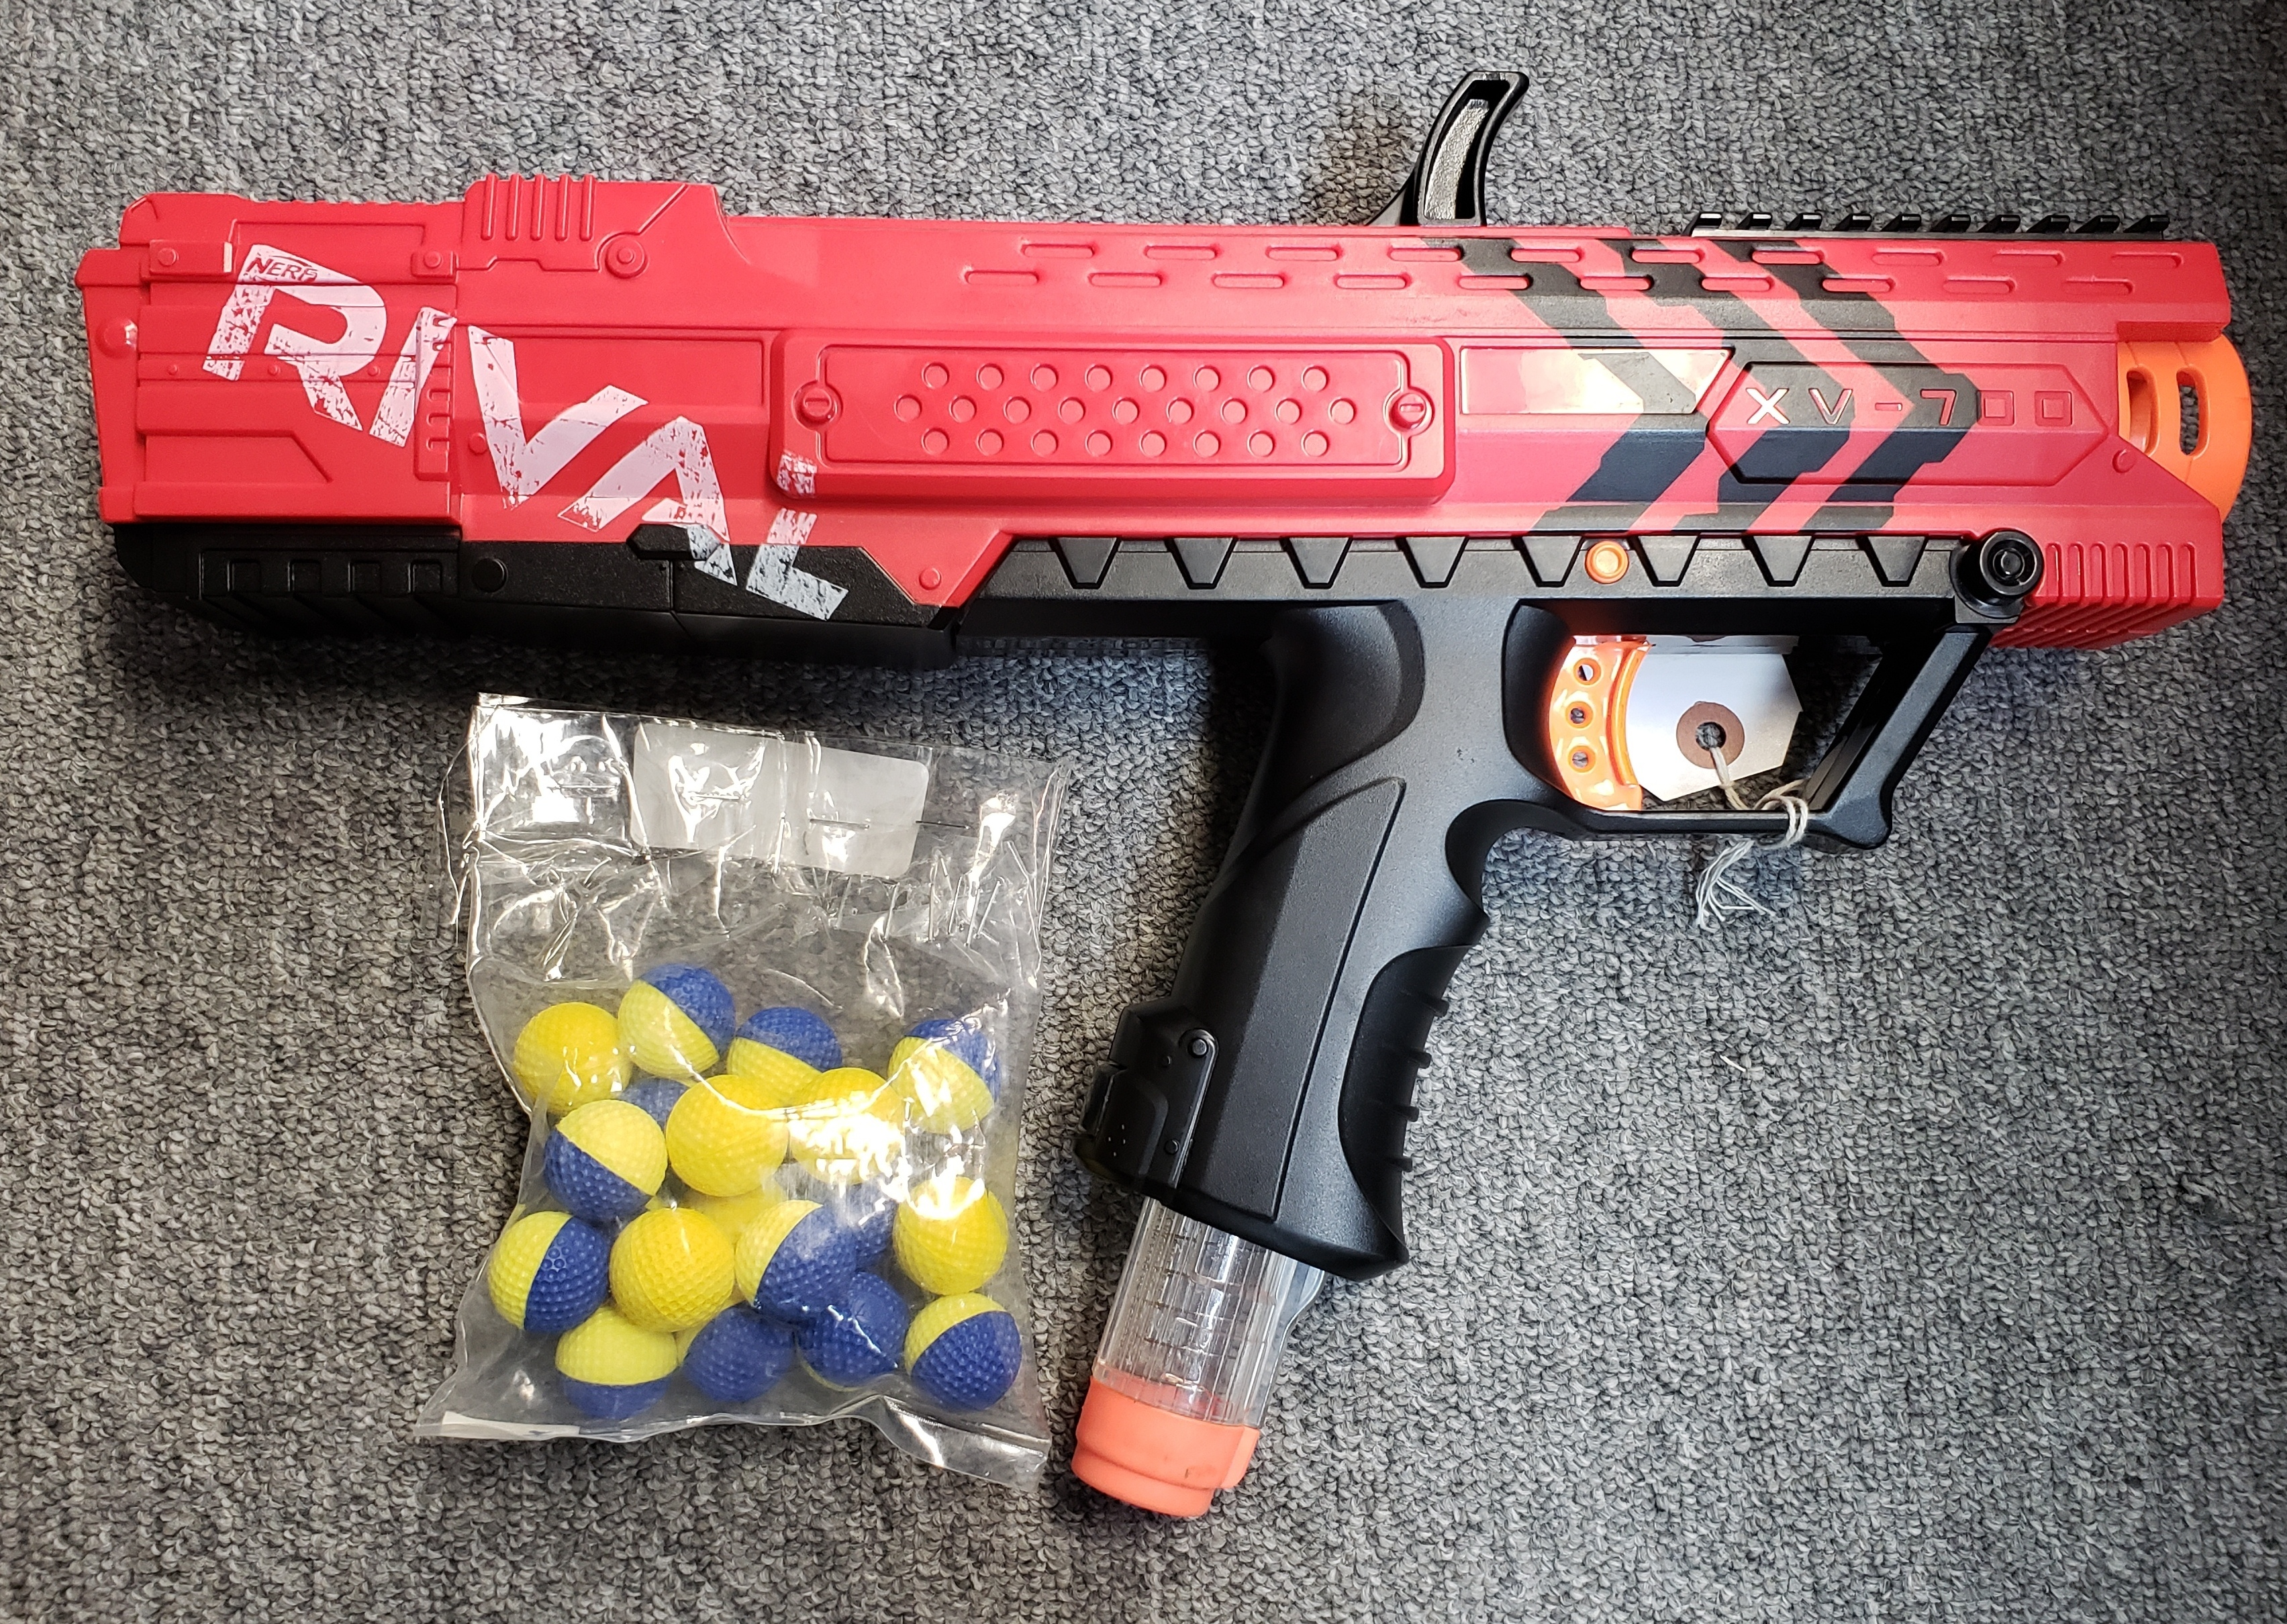 NERF RIVAL APOLLO XV-700 RED BLASTER DART GUN (NERF BALLS INCLUDED)